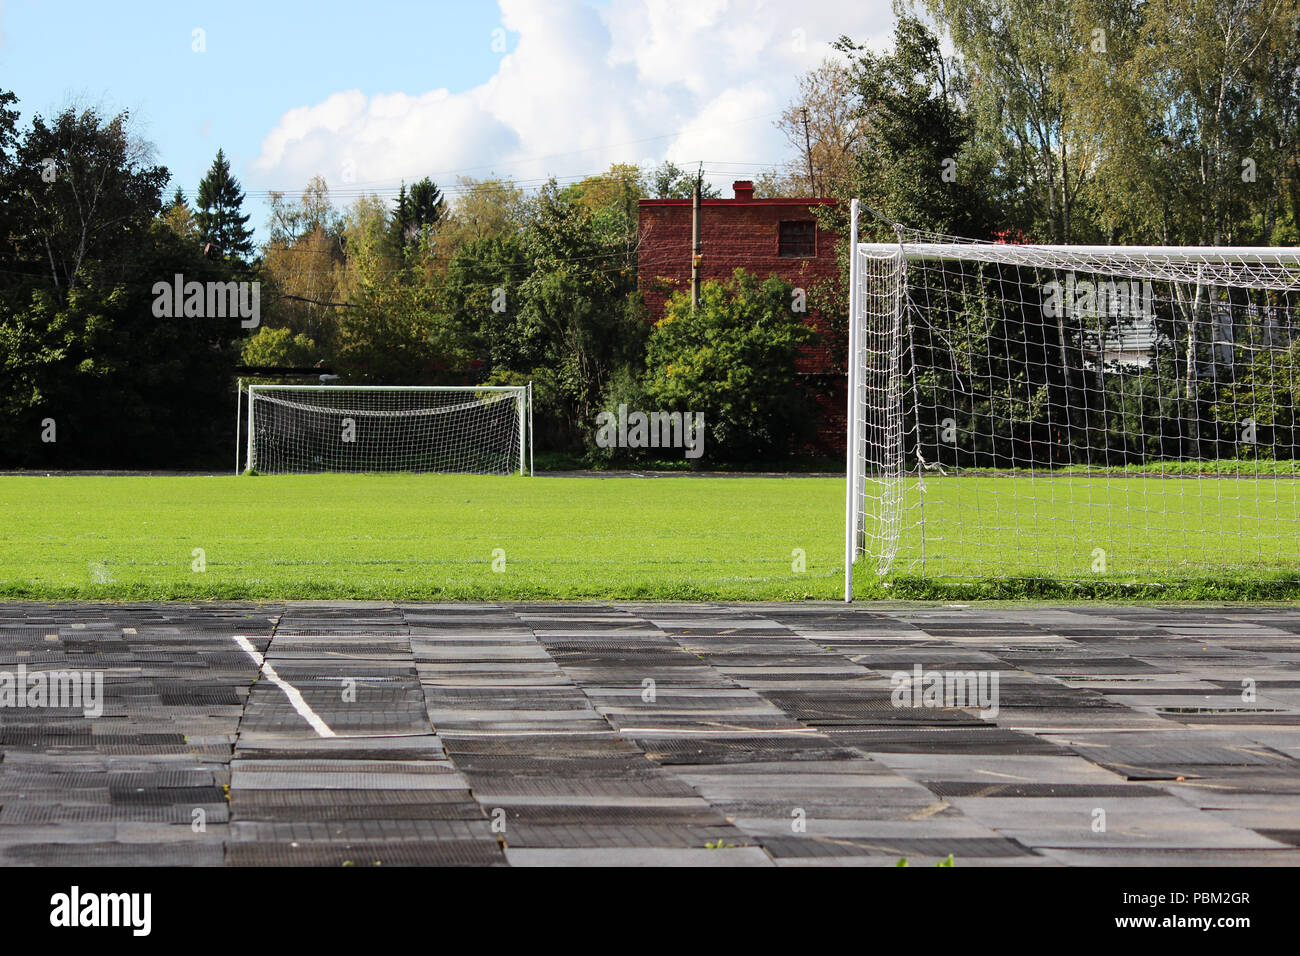 stadium: a treadmill with rubber plates and a football field with a goalkeeper's goals - Stock Image